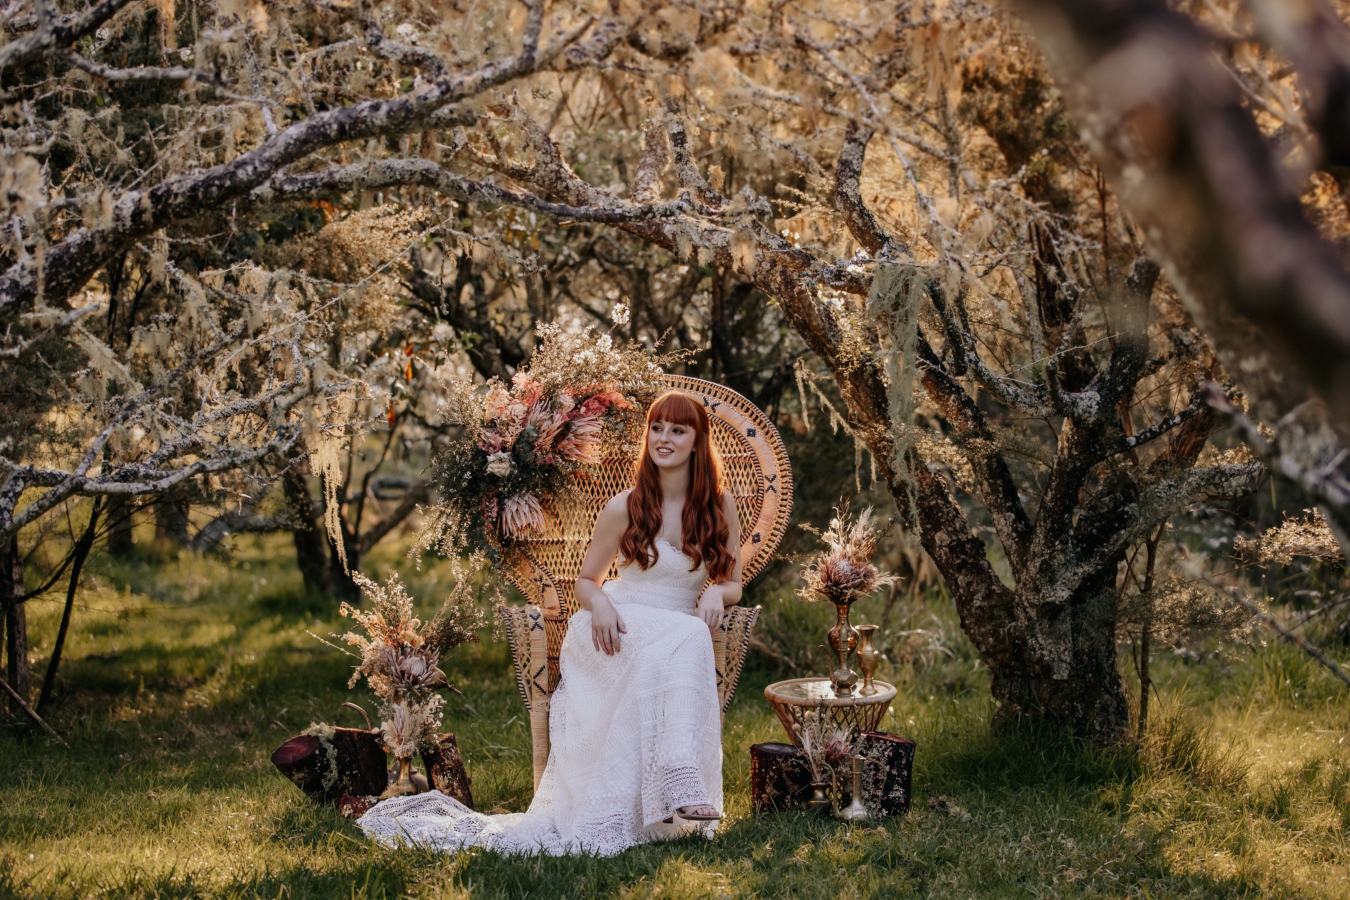 Bride on cane chair in middle of orchard amongst trees